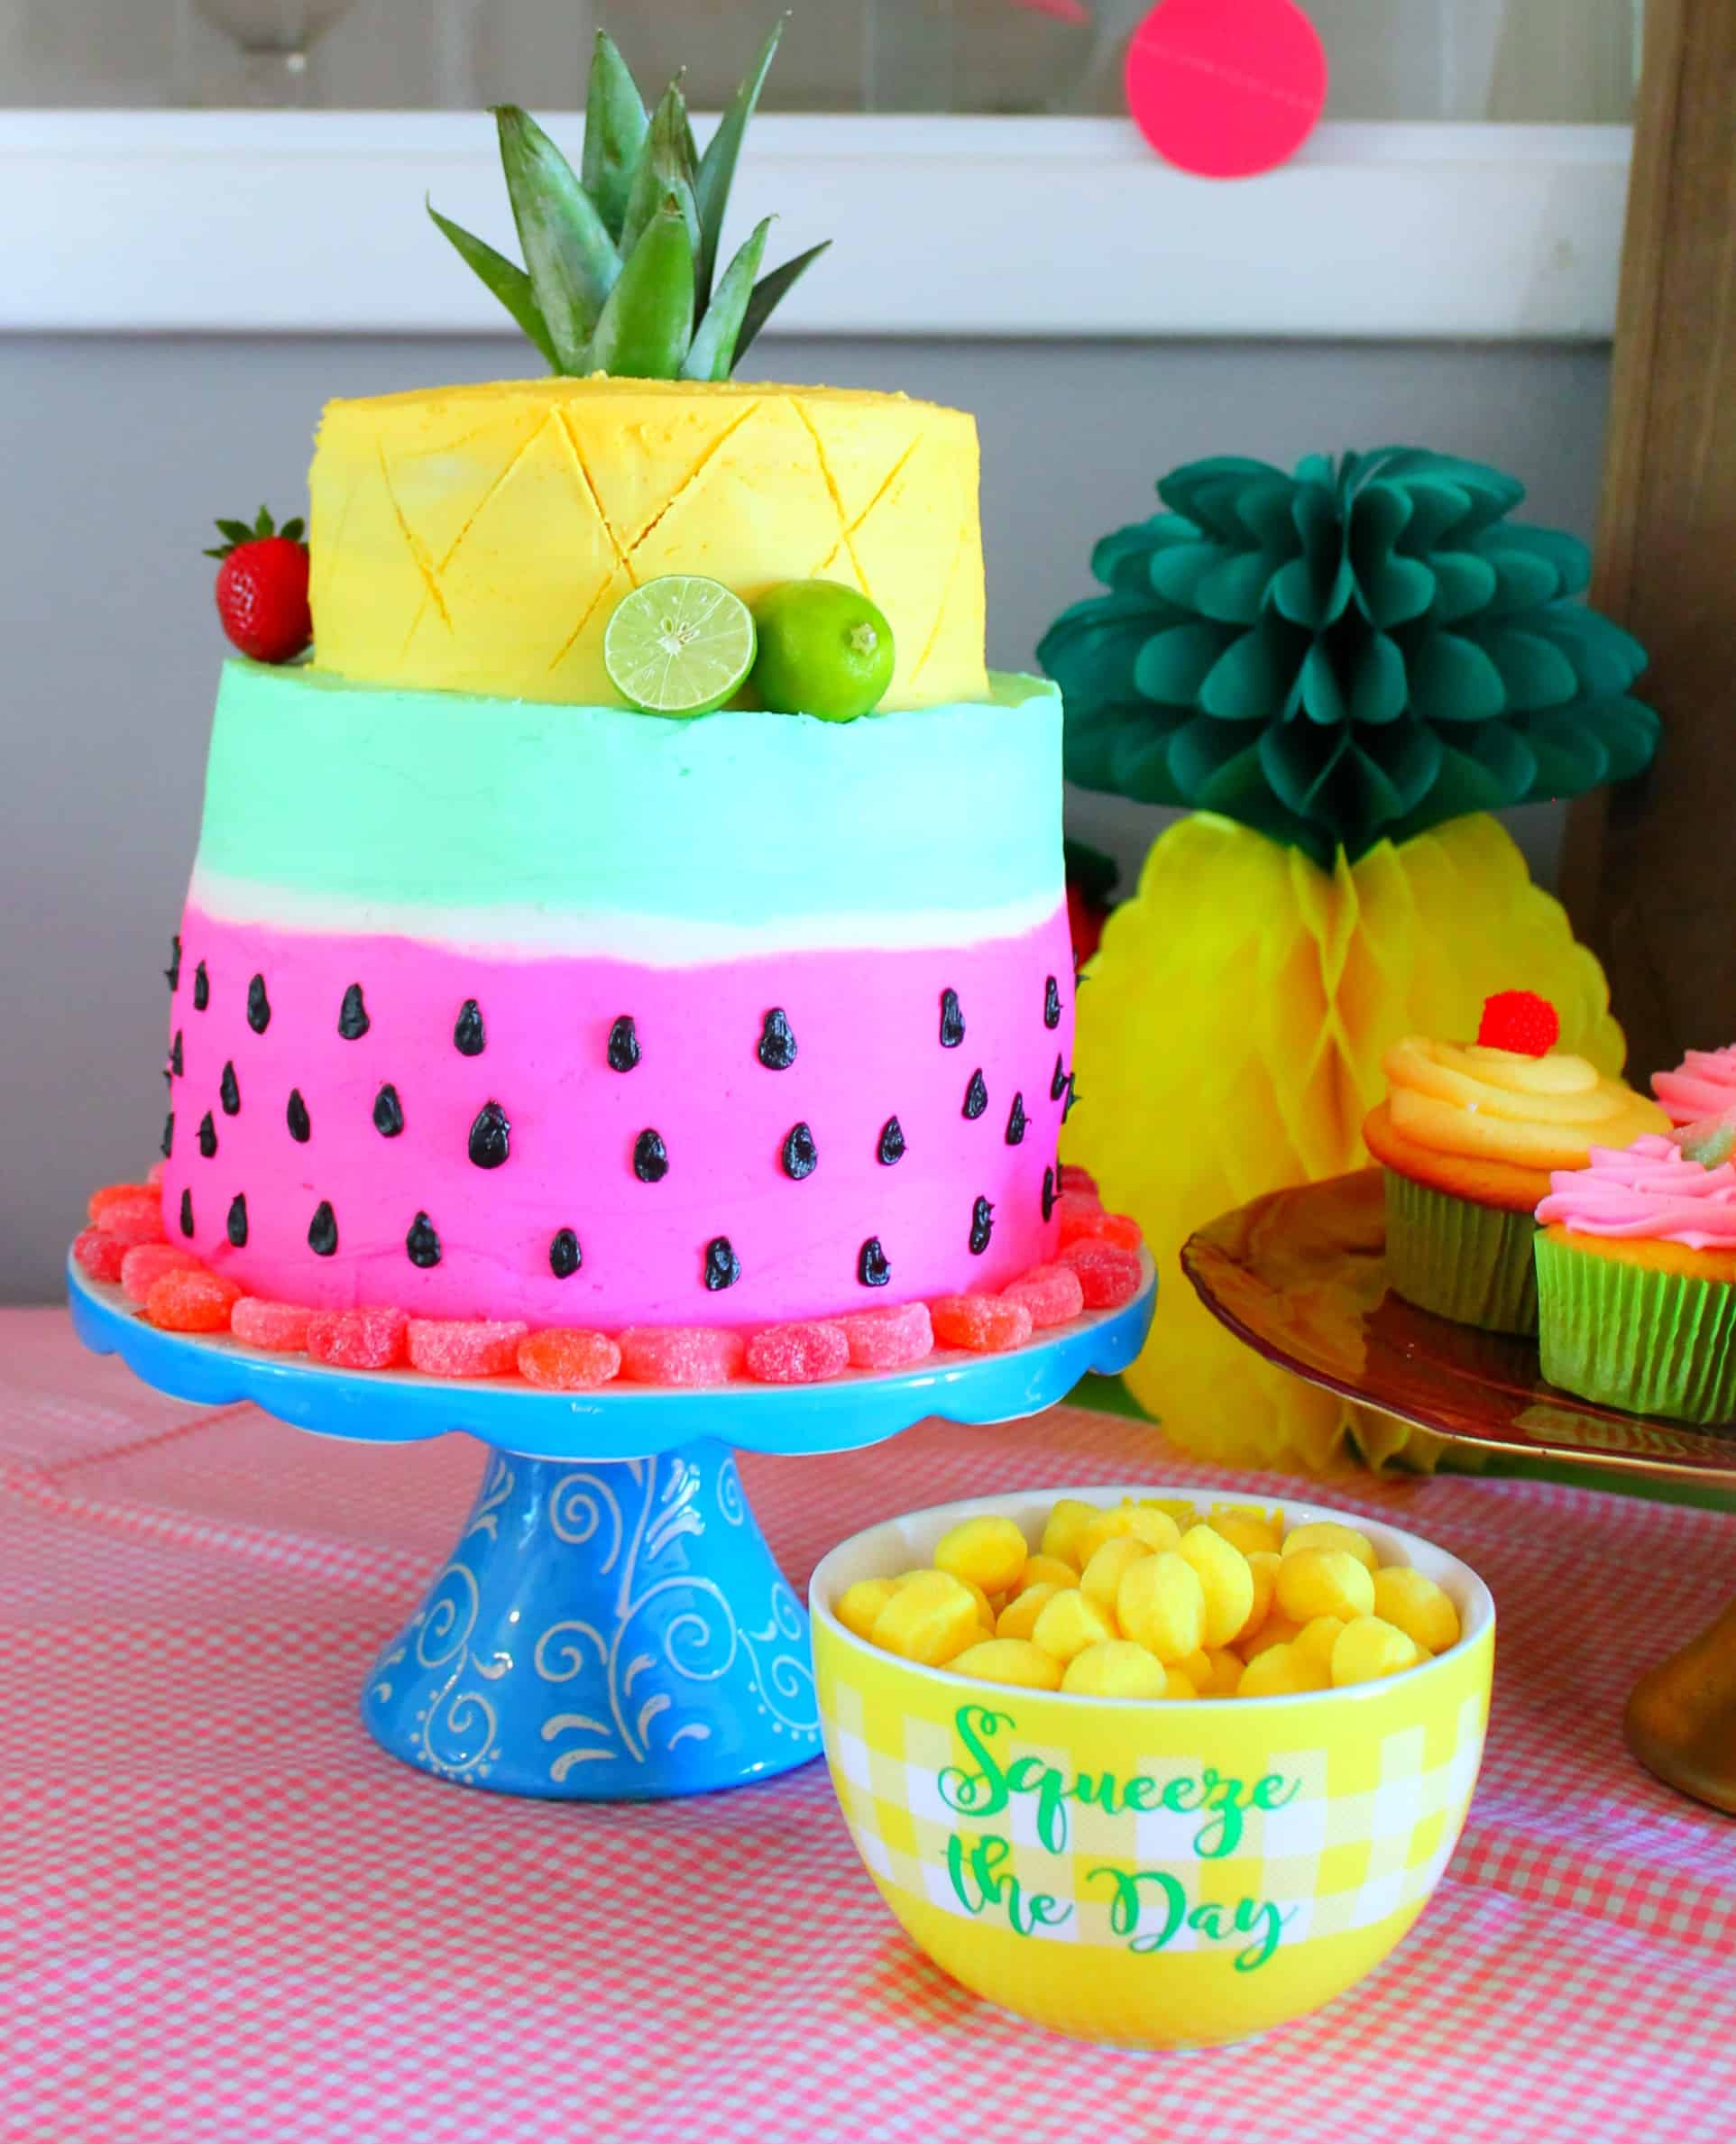 Two-tti fruity birthday, birthday theme, two year old birthday, girls birthday, summer birthday, fruit, fruity, tootie fruity, birthday party, birthday, cake, fruit cake, watermelon cake, pineapple cake, two-tti fruity cake